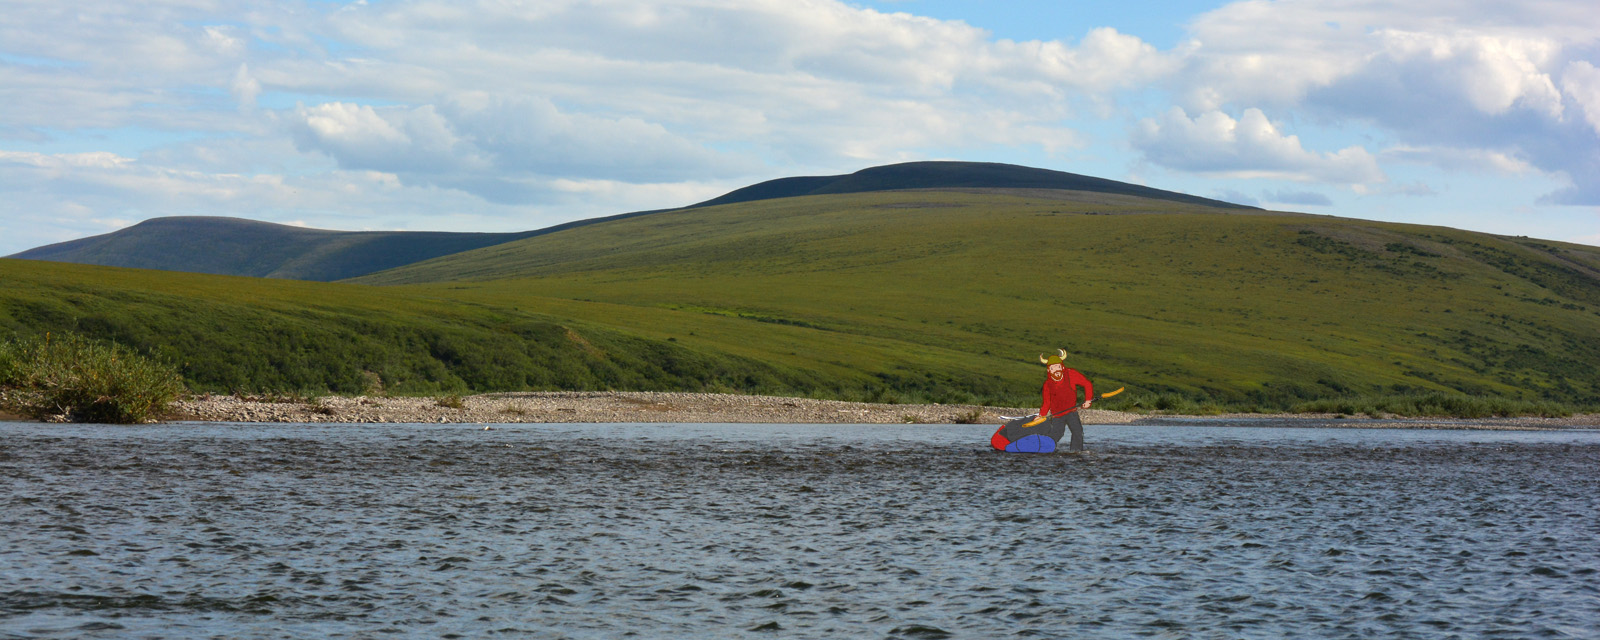 Jason Mercer drags his Alpacka packraft over a shallow riverbar on the Anaktuvuk River, with the green hills of the North Slope and blue sky behind him